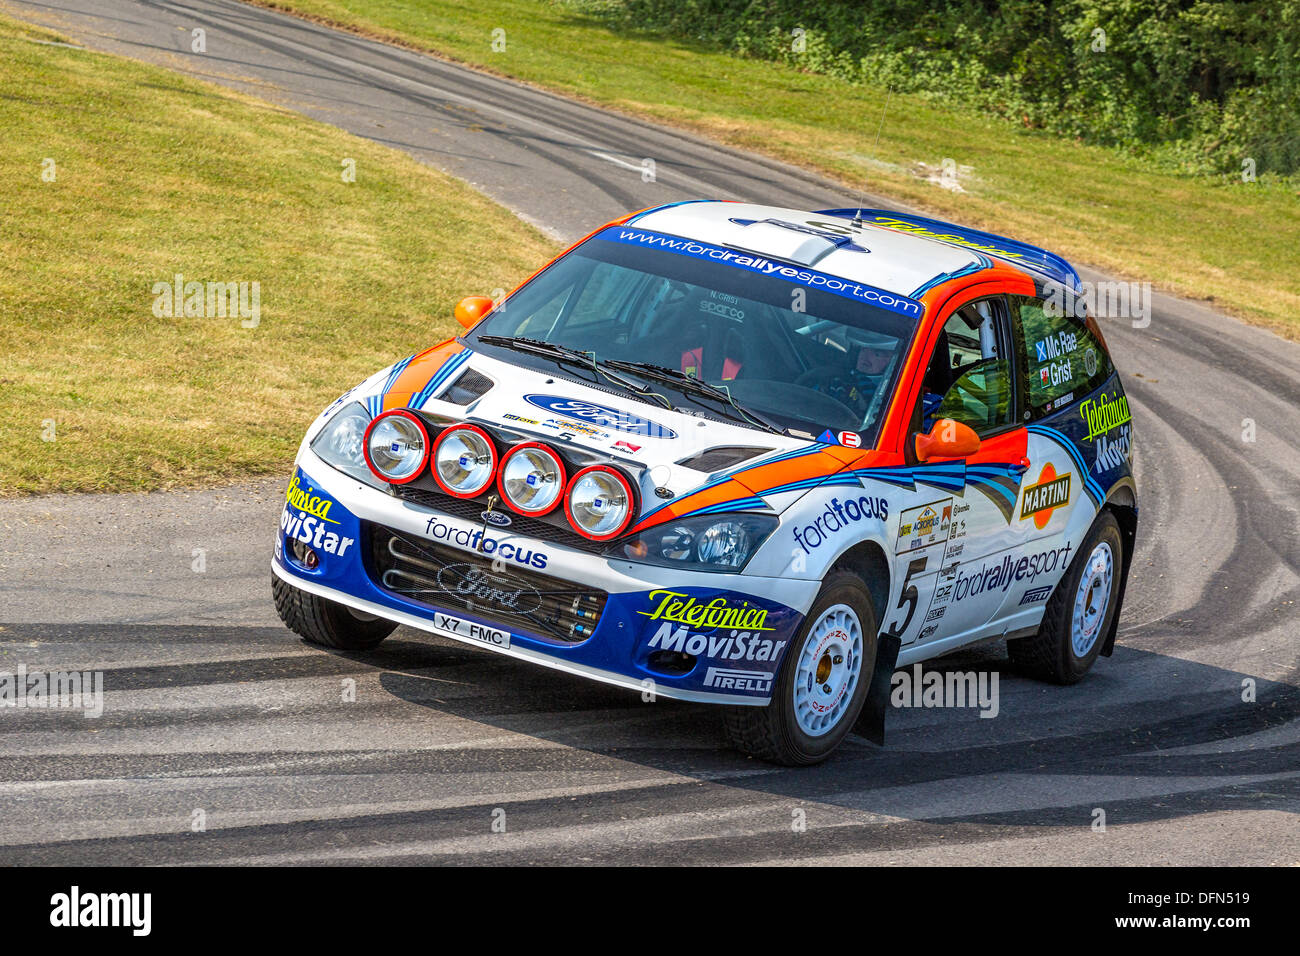 2001 Ford Focus WRC with driver Steve Rockingham on the rally stage at the 2013 Goodwood Festival of Speed, Sussex, - Stock Image